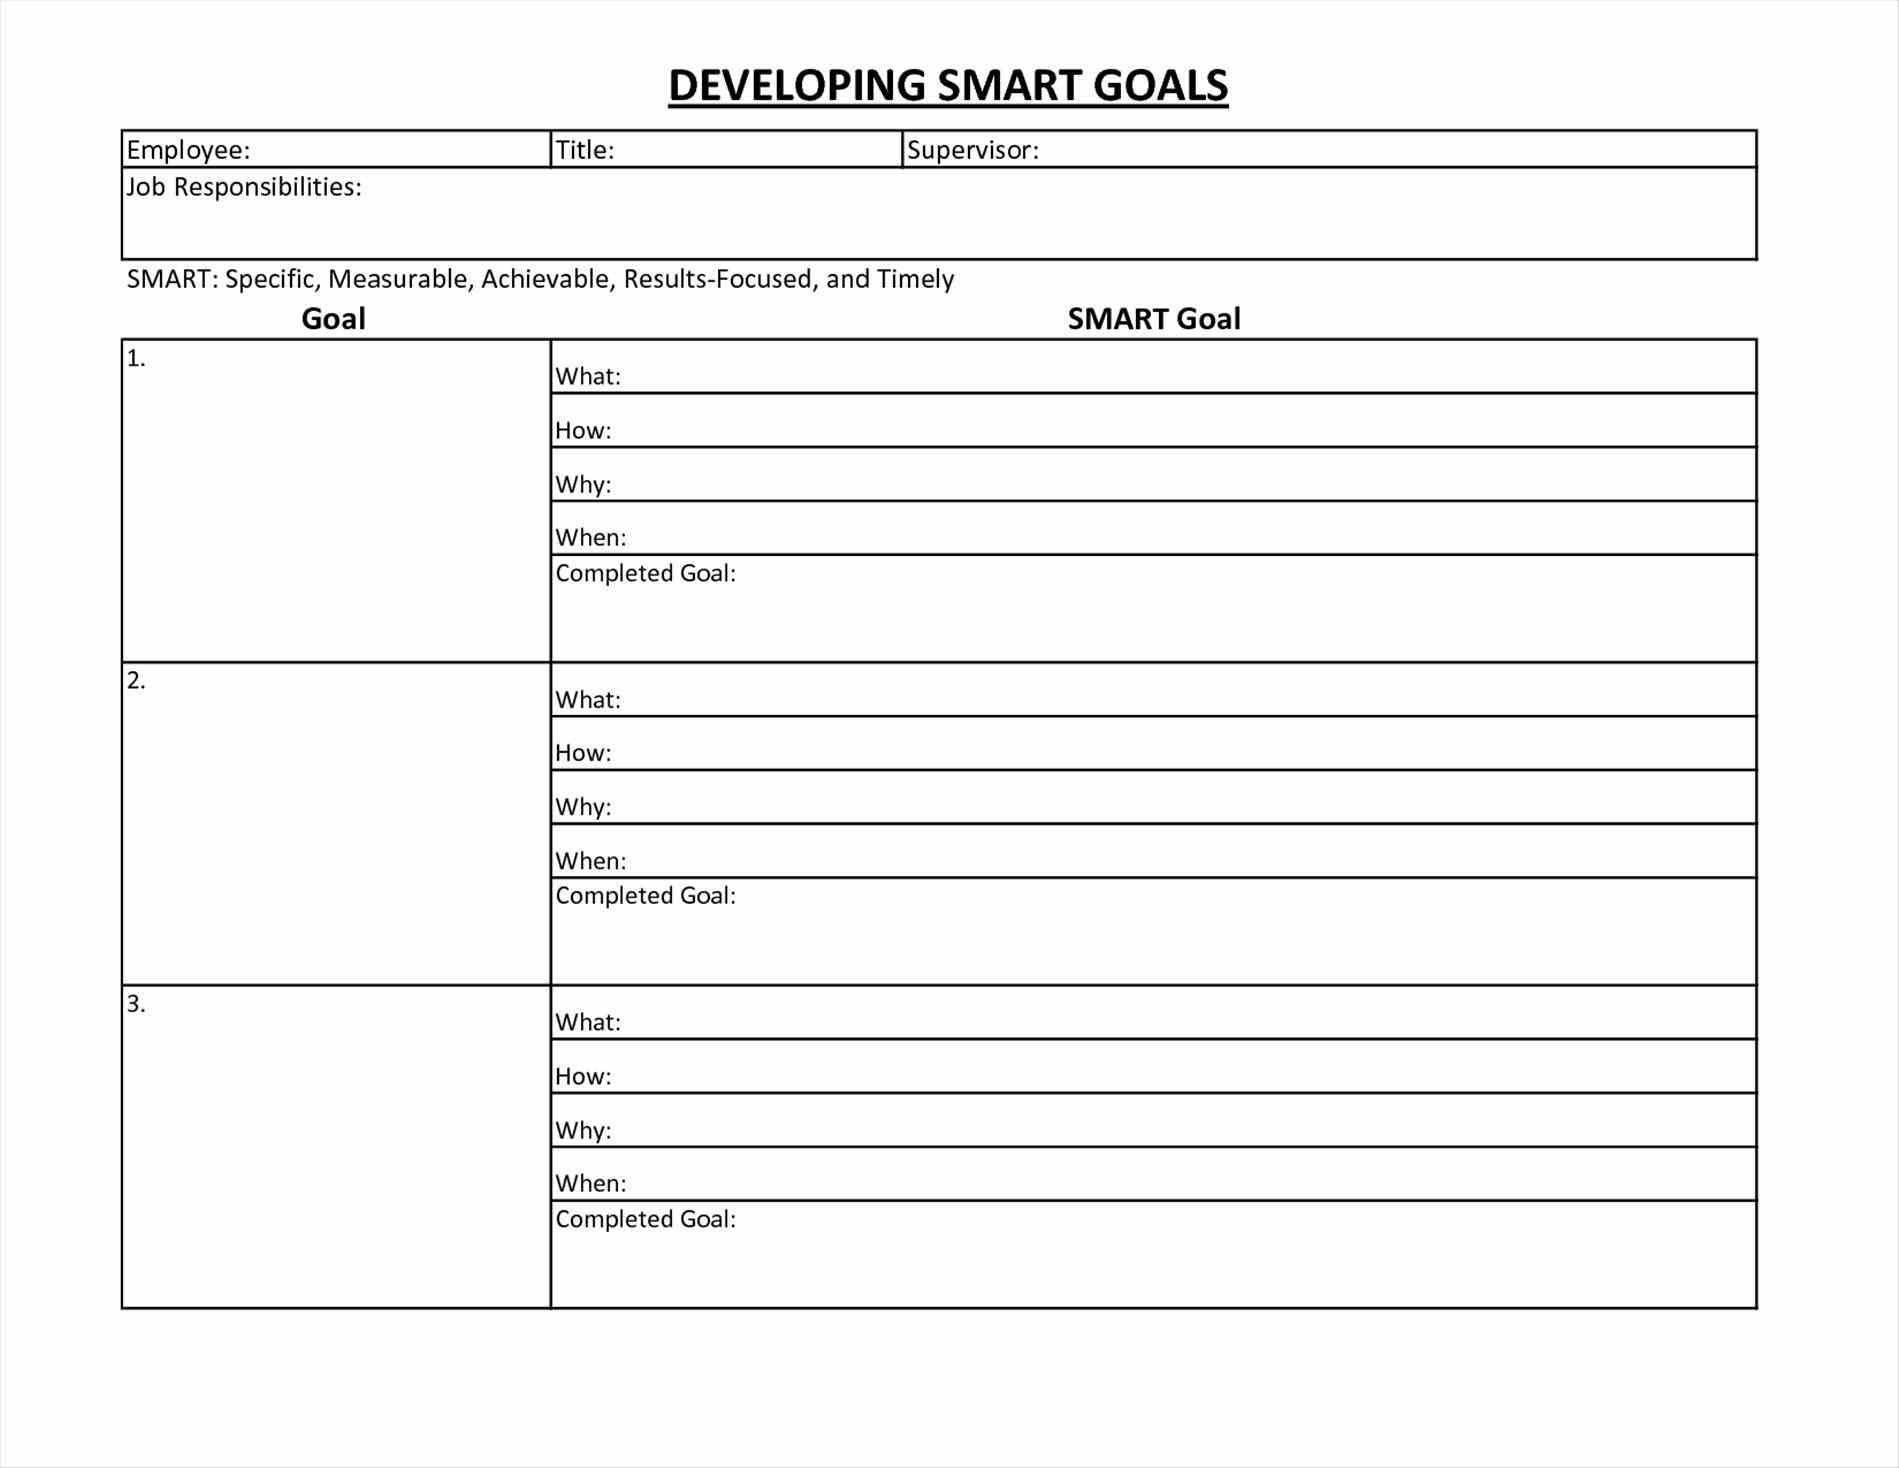 Worksheets Career Goal Setting Worksheet pictures goal setting template excel smart goals worksheet newpcairport pdf personal sheet worksheets